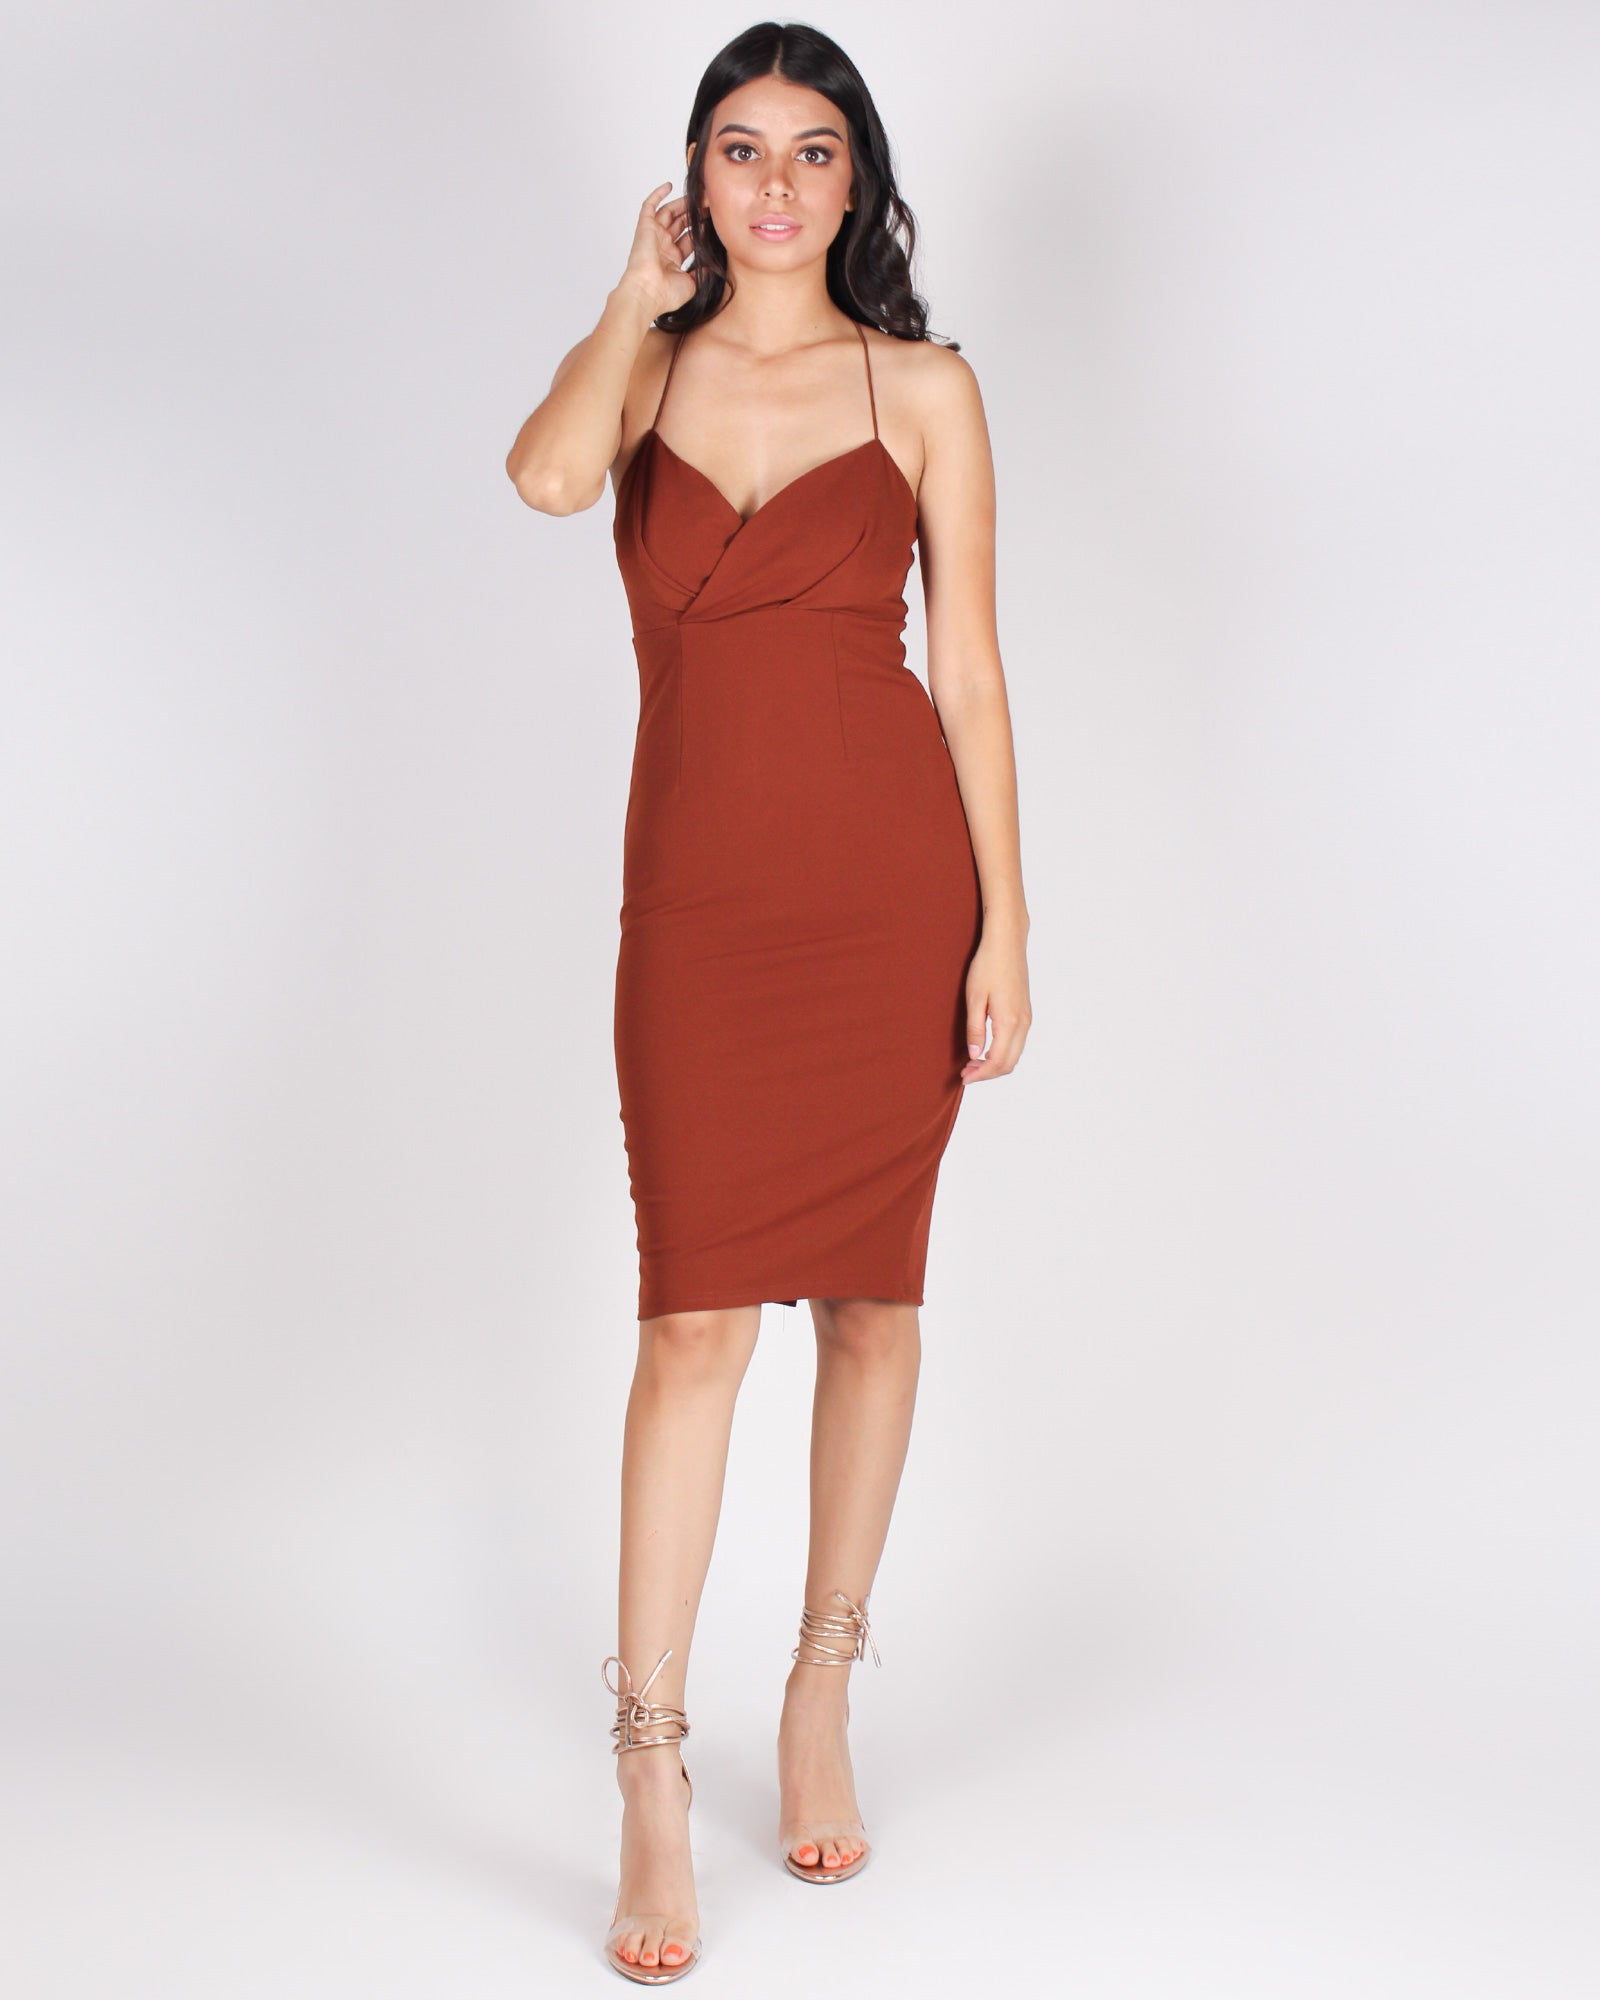 Fashion Q Shop Q Cheers to the Night Bodycon Dress (Rust) HMD12081